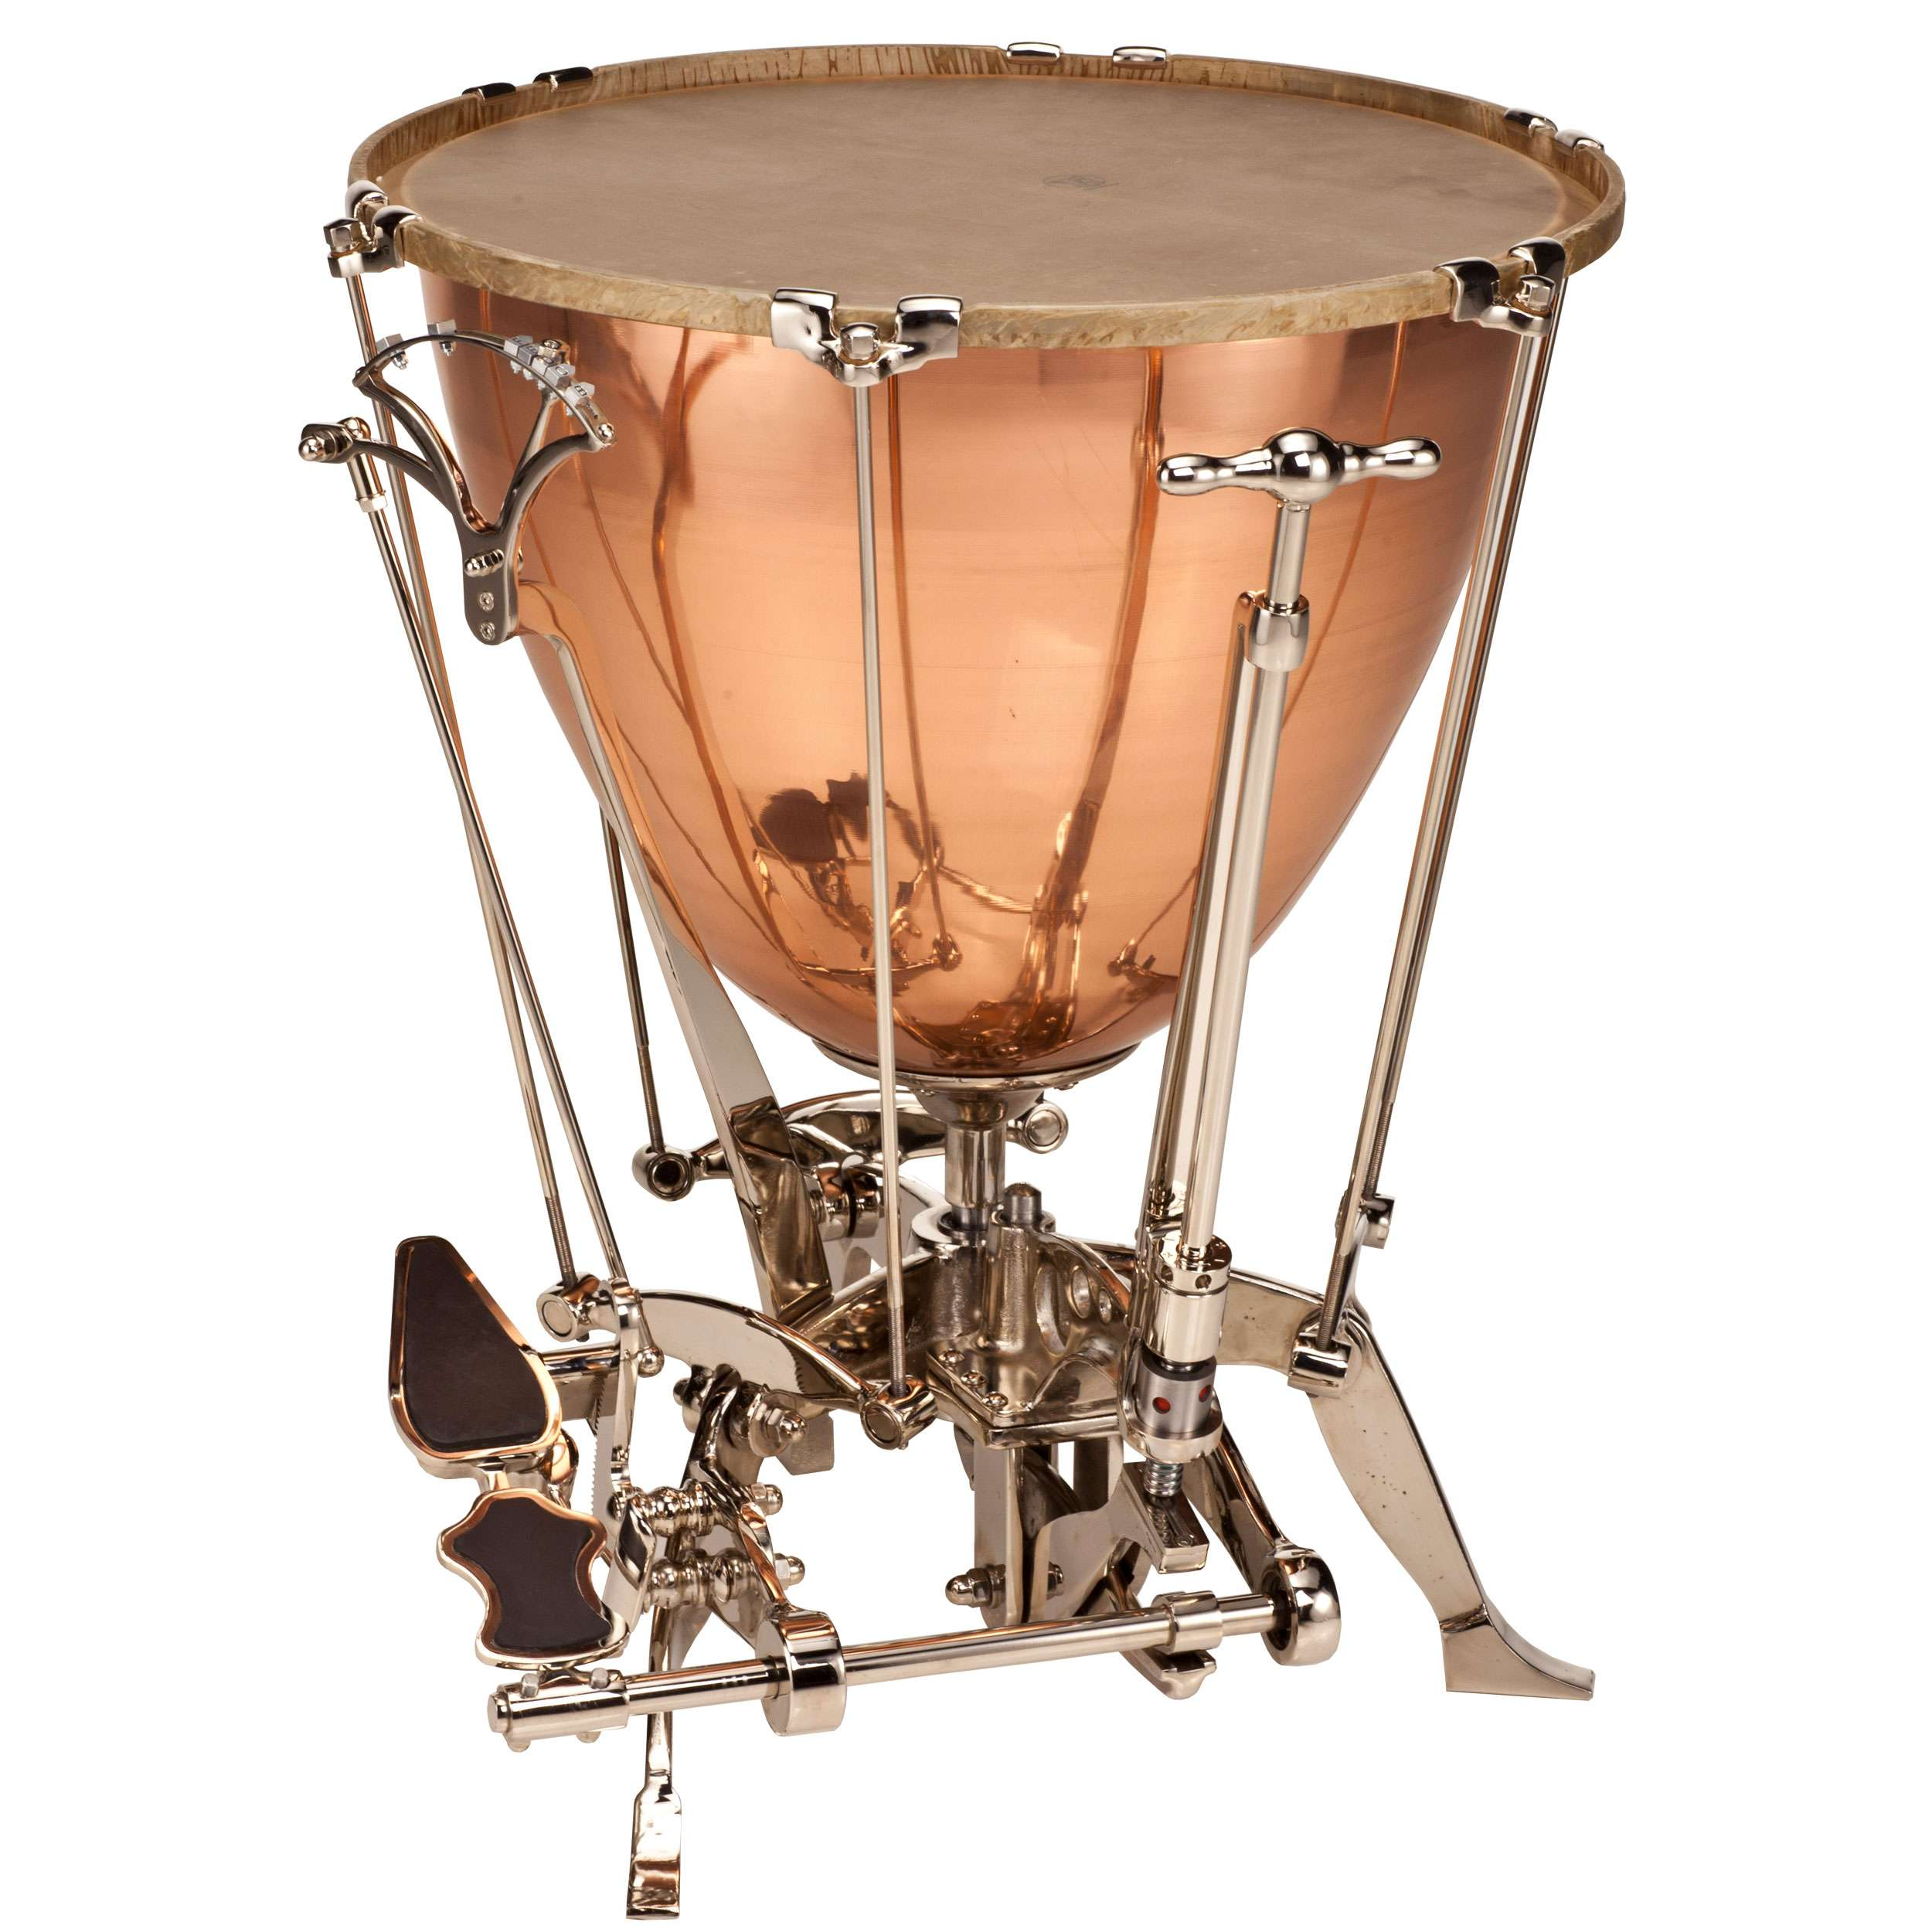 "Adams 20"" Schnellar Timpani with Kurbel (Crank) and Calfskin Head"